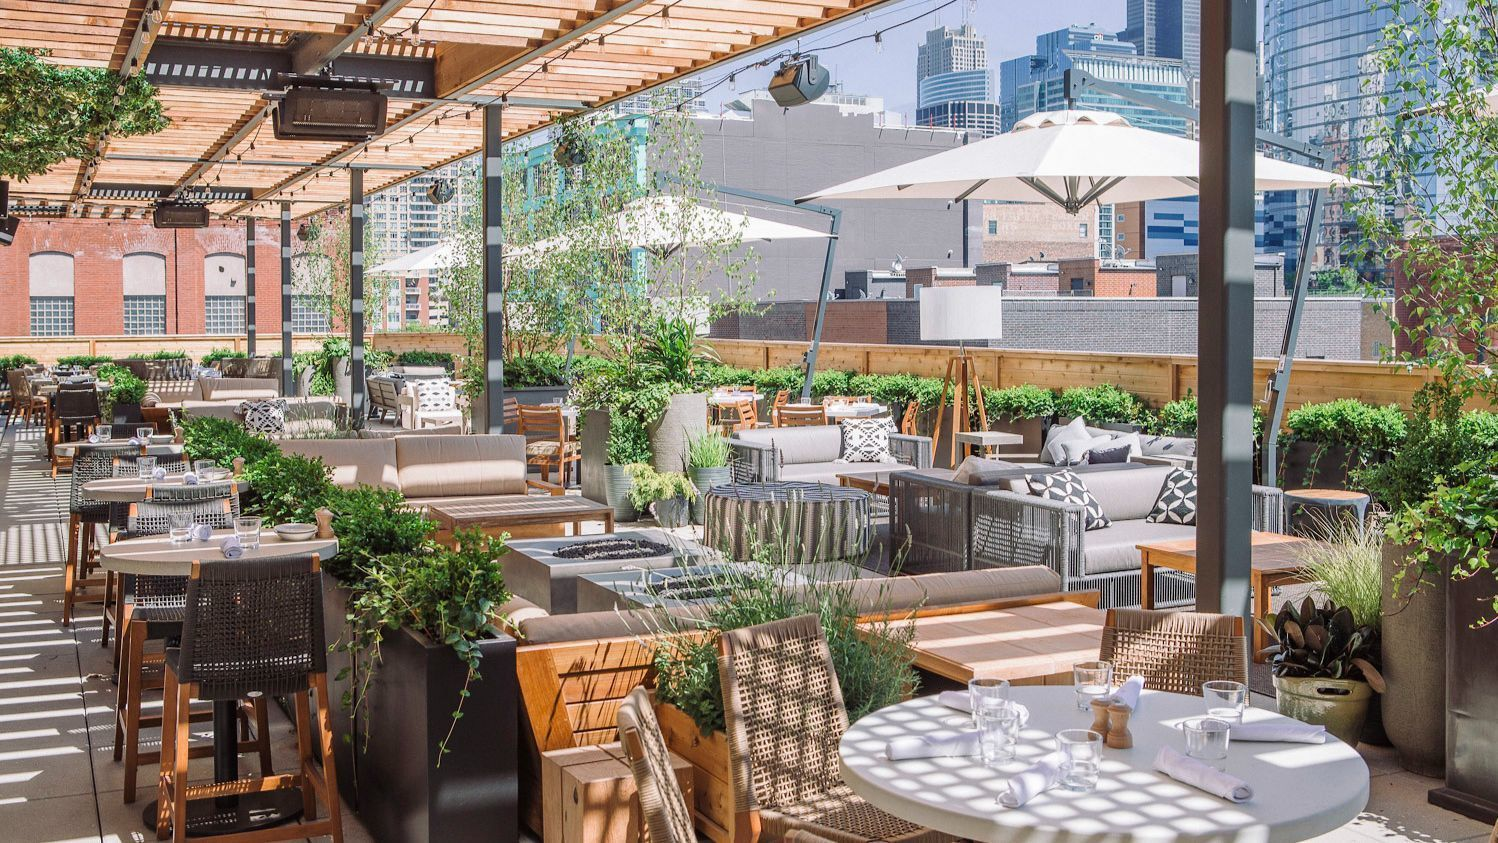 100 Plus Chicago Patios And Rooftops For Summer Eating And